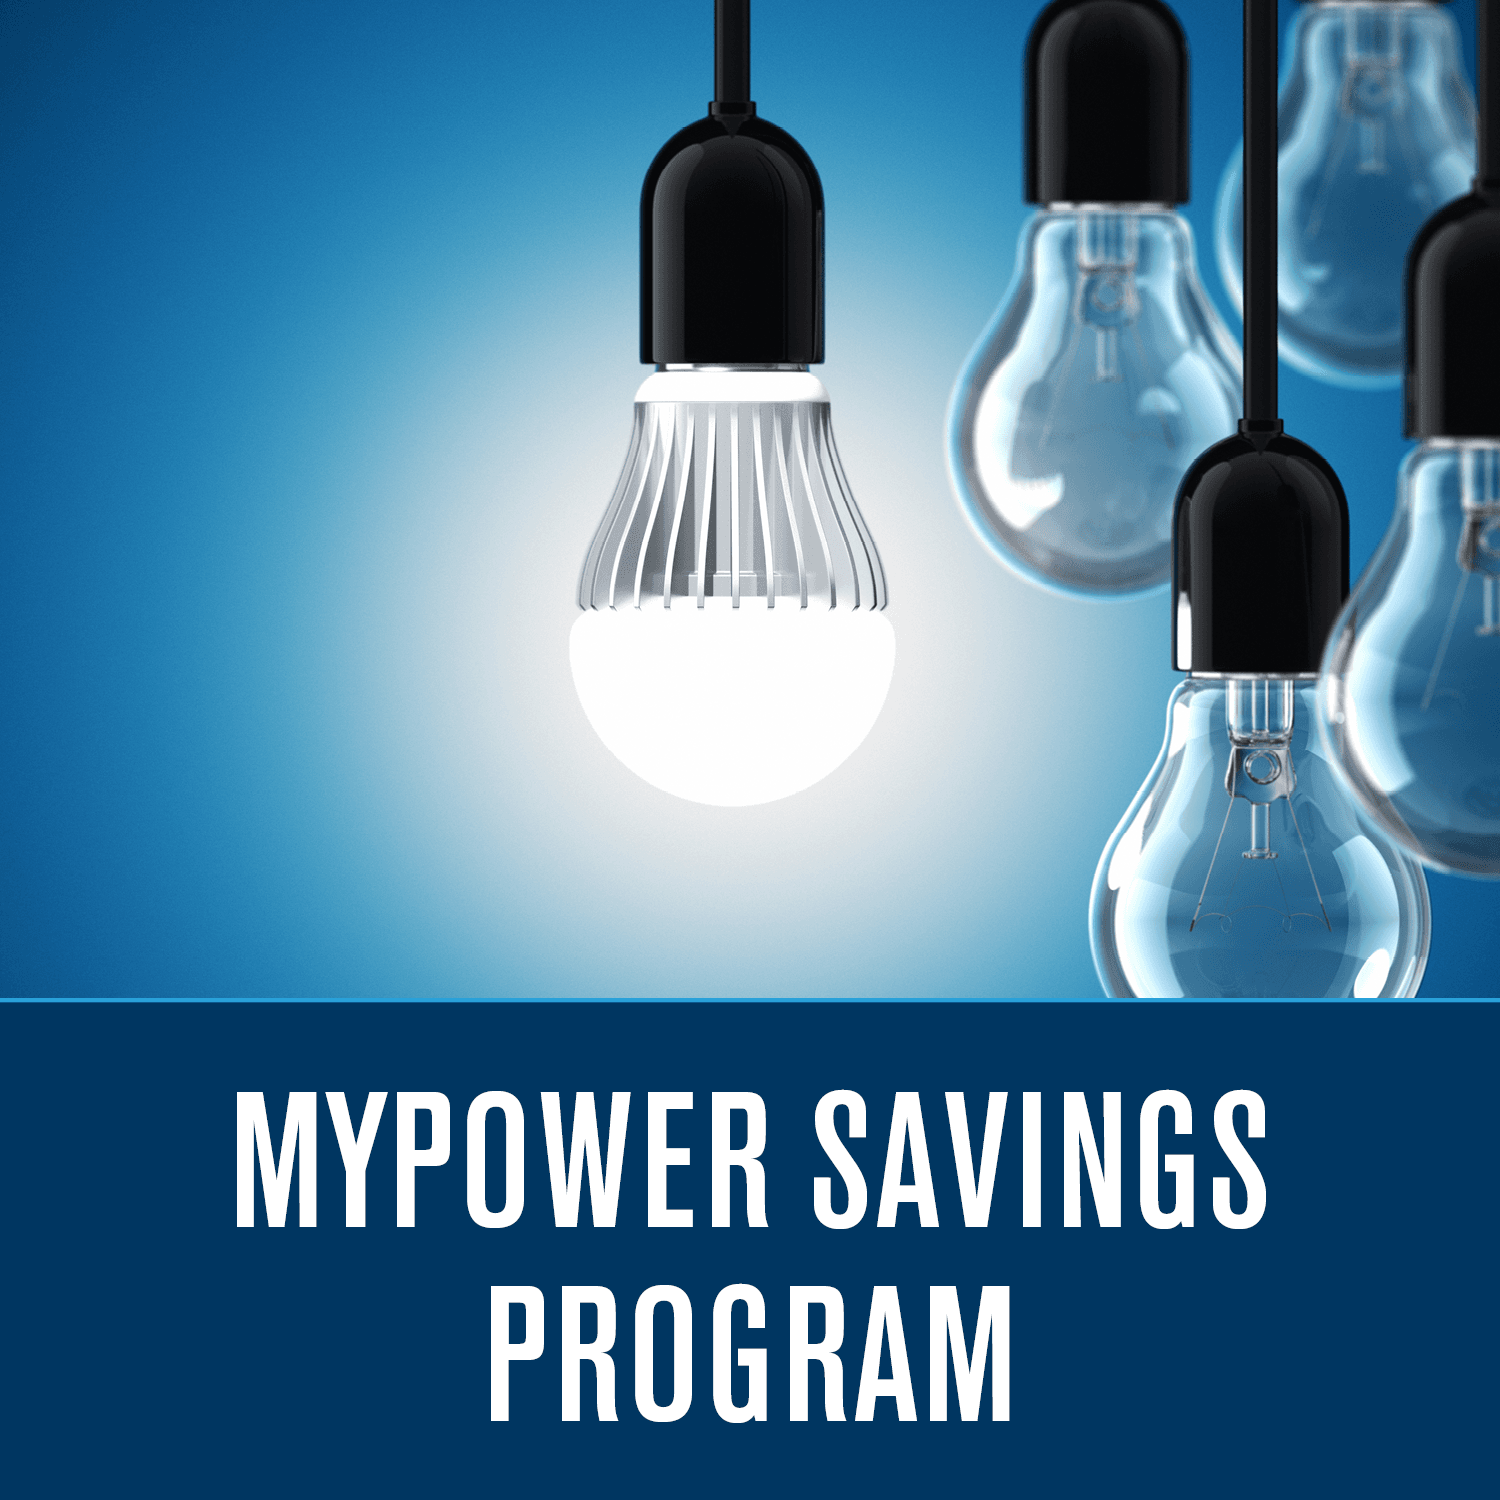 MyPOWER Savings Program